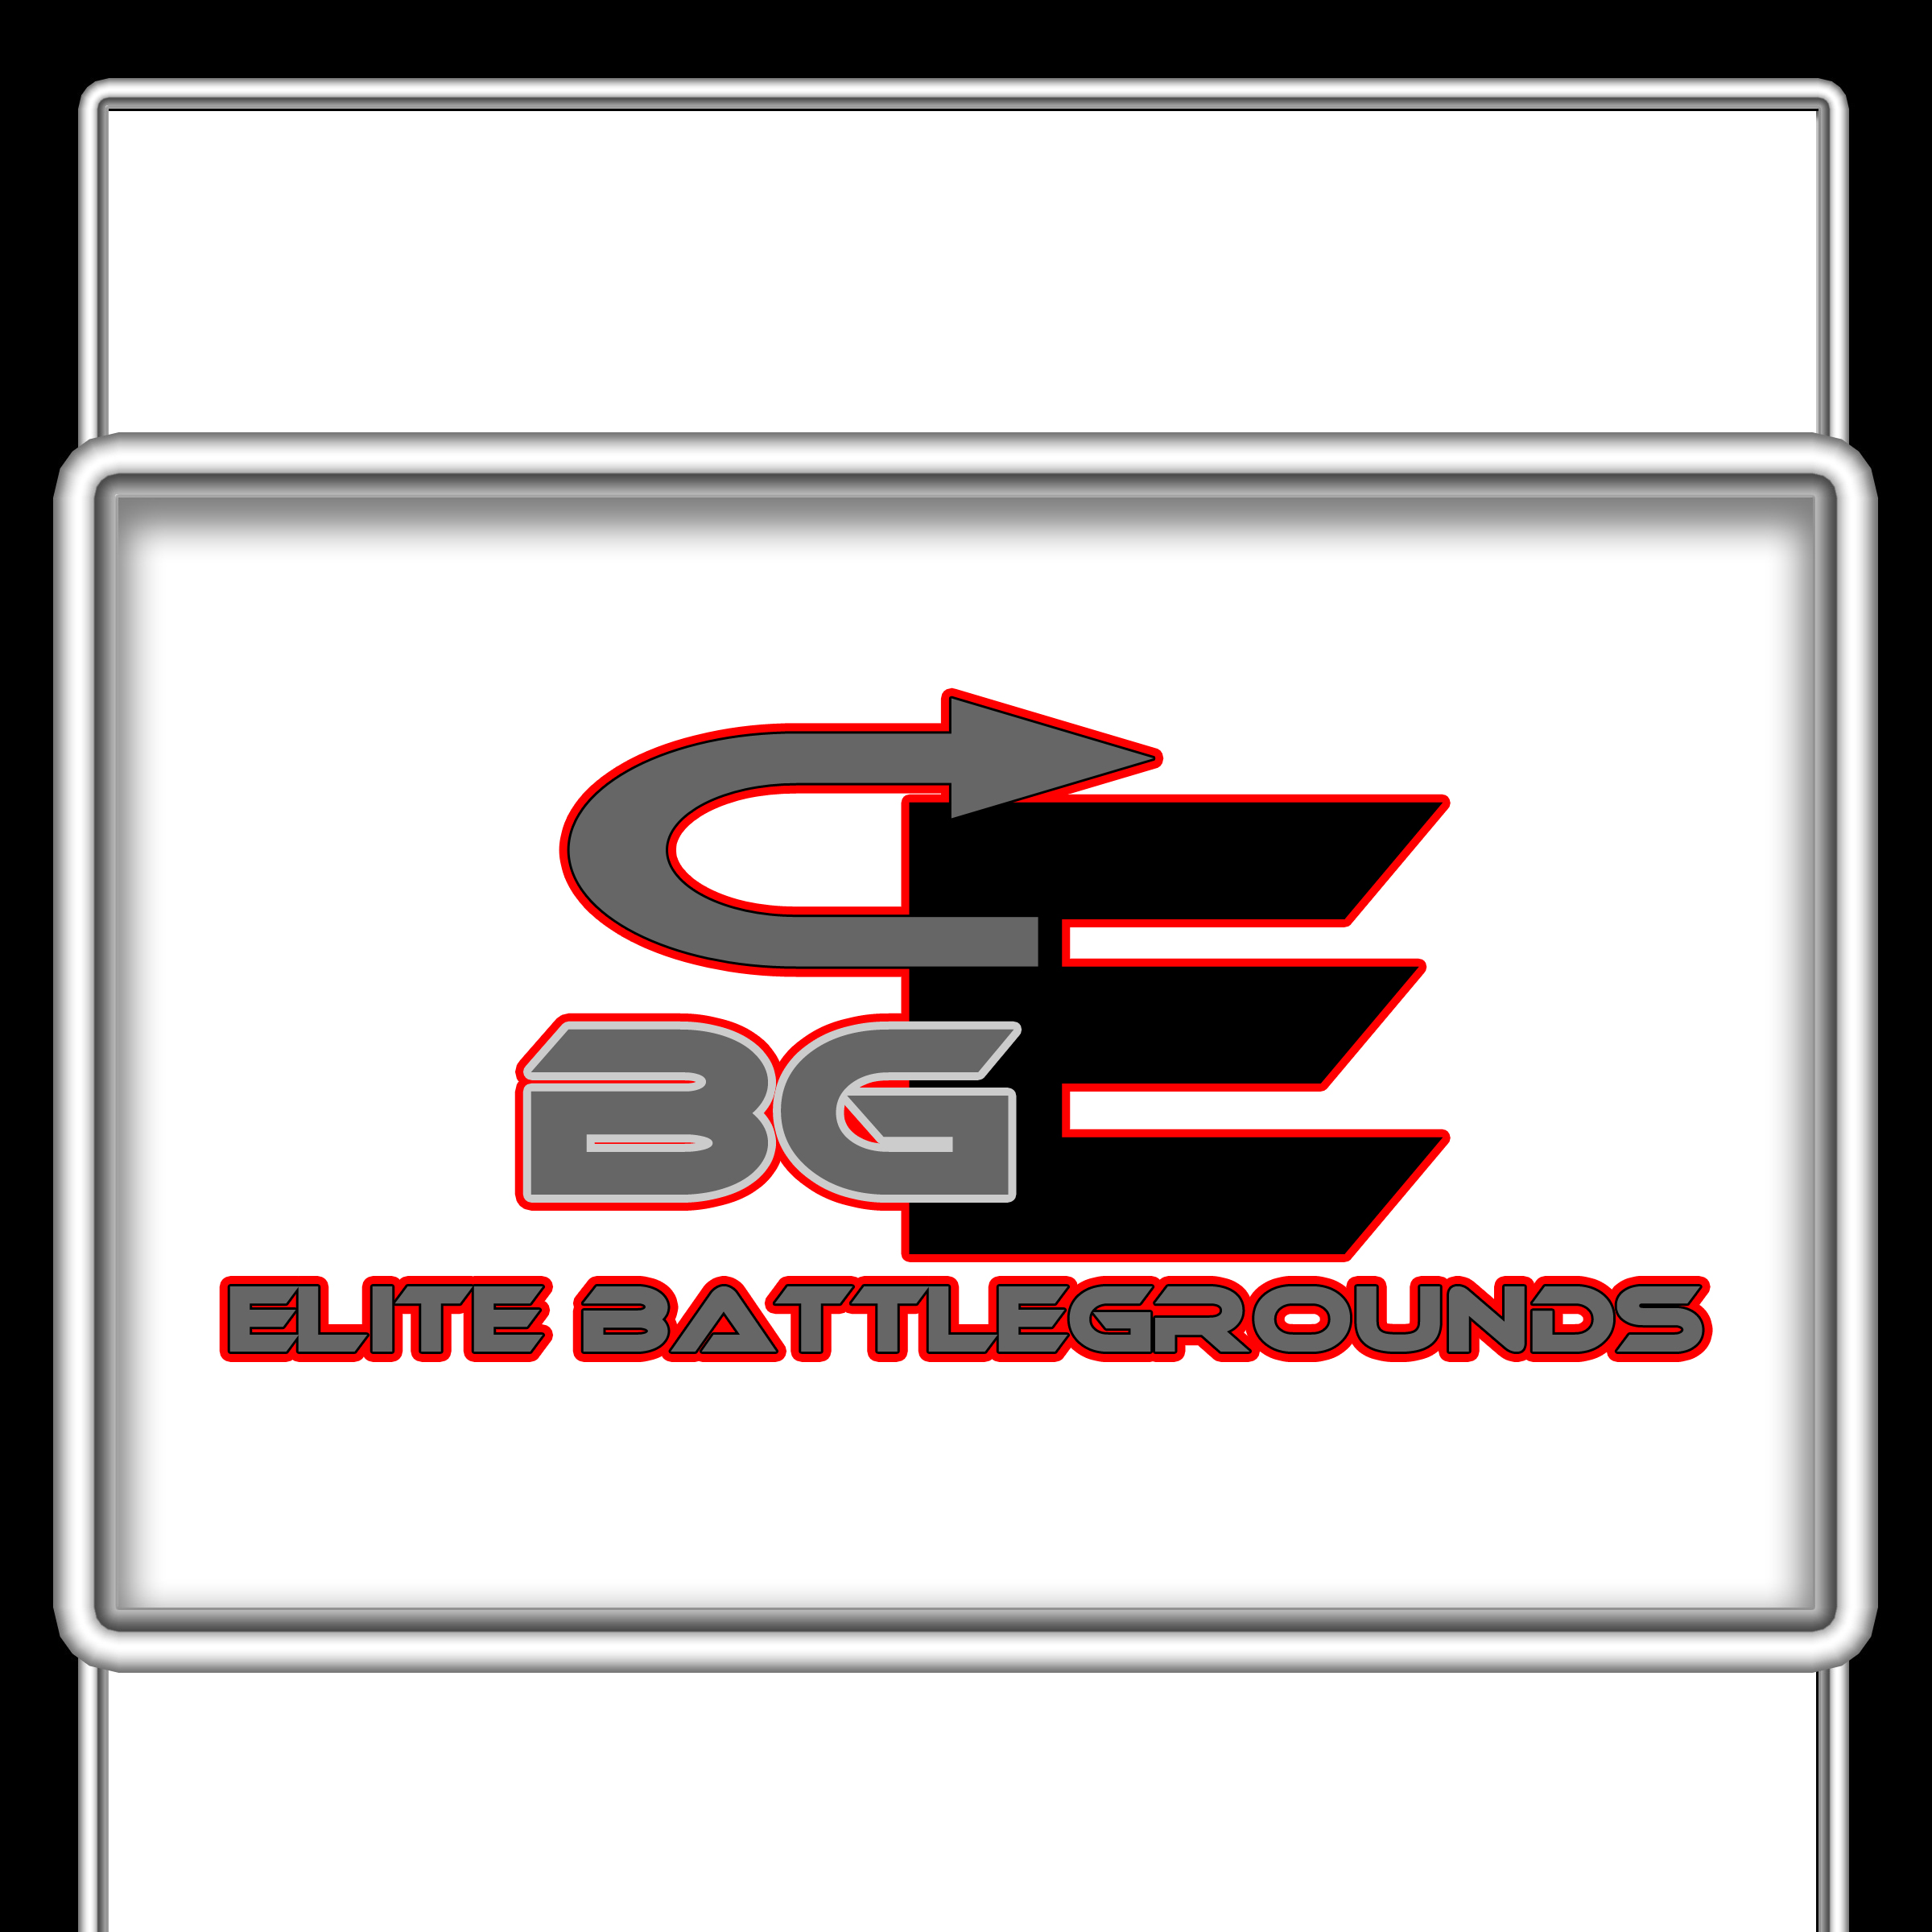 Logo Design by MITUCA ANDREI - Entry No. 8 in the Logo Design Contest Creative Logo Design for Elite Battlegrounds.